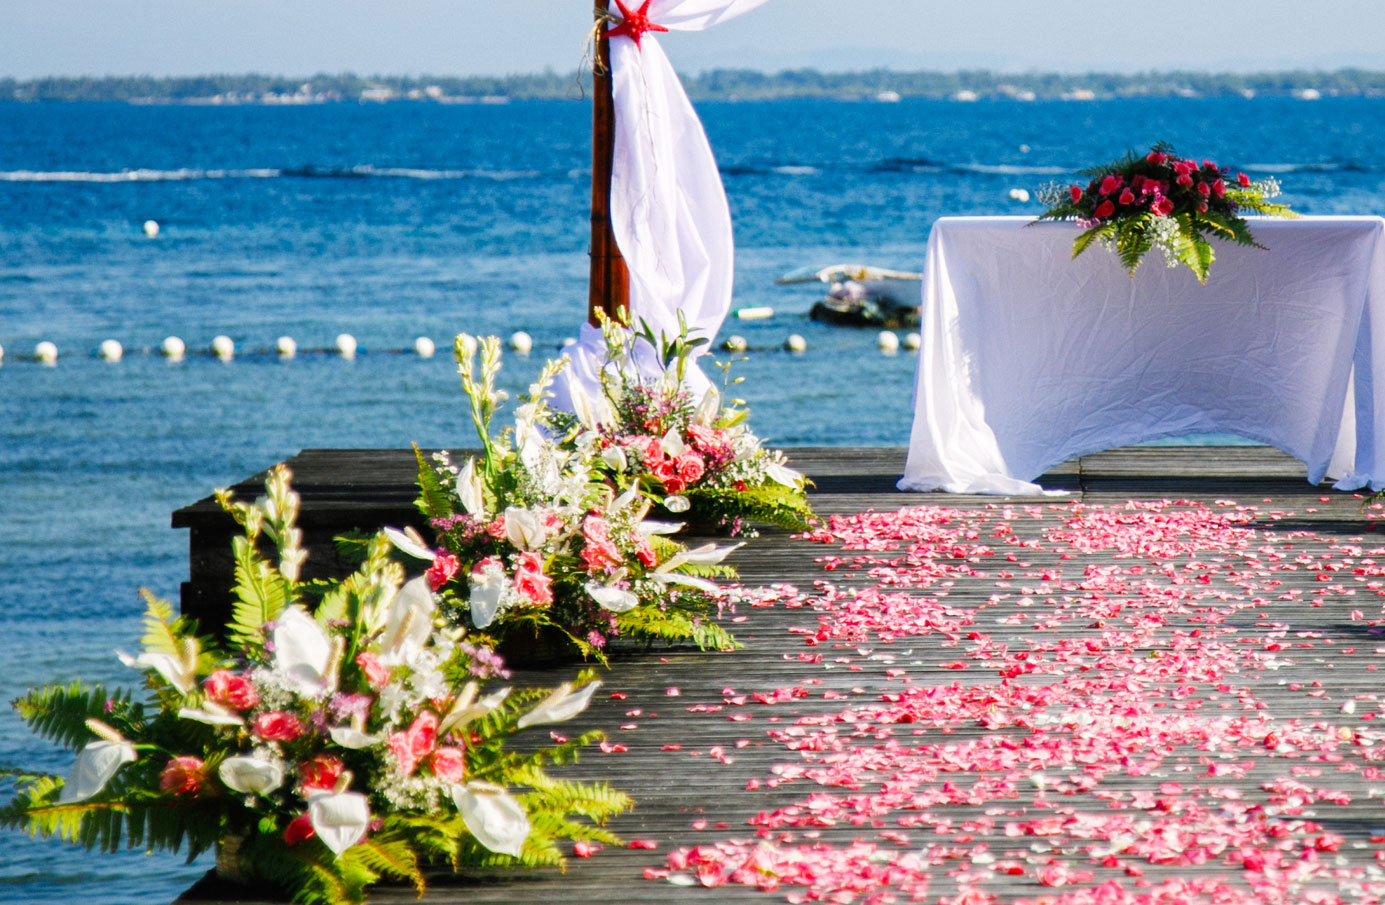 beachweddingdecoration13